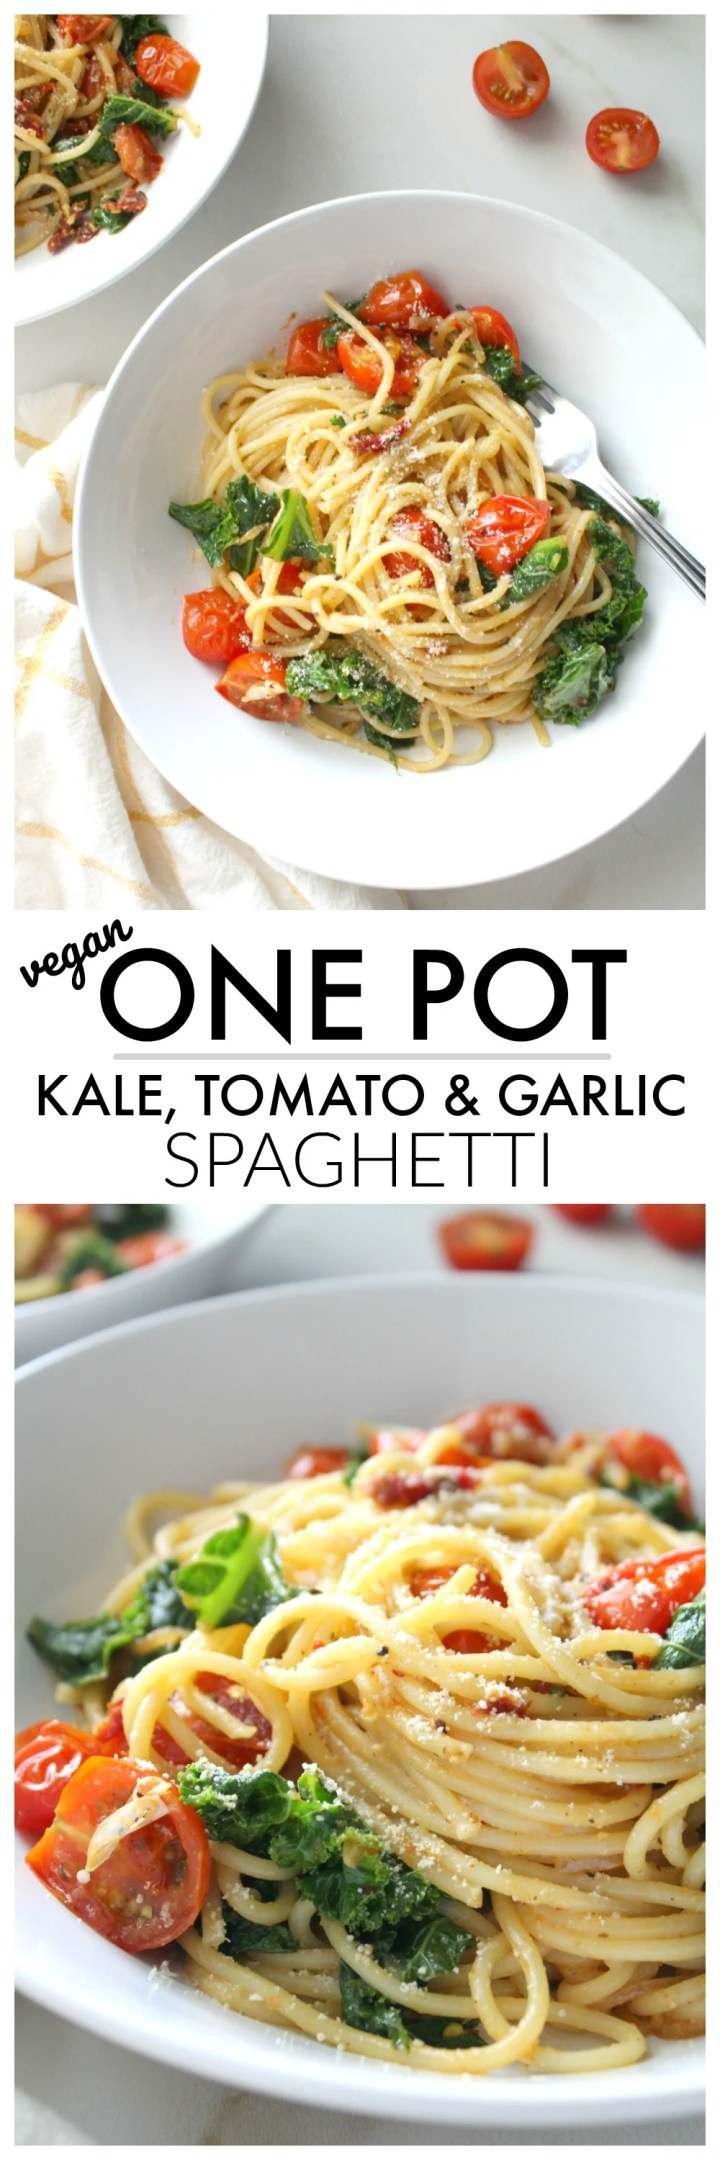 Keep dinner simple and delicious with thisOne Pot Kale, Tomato & Garlic Spaghetti. A simple vegan pasta dish that is packed full of veggies and bright flavors | ThisSavoryVegan.com #thissavoryvegan #veganpasta #plantbased